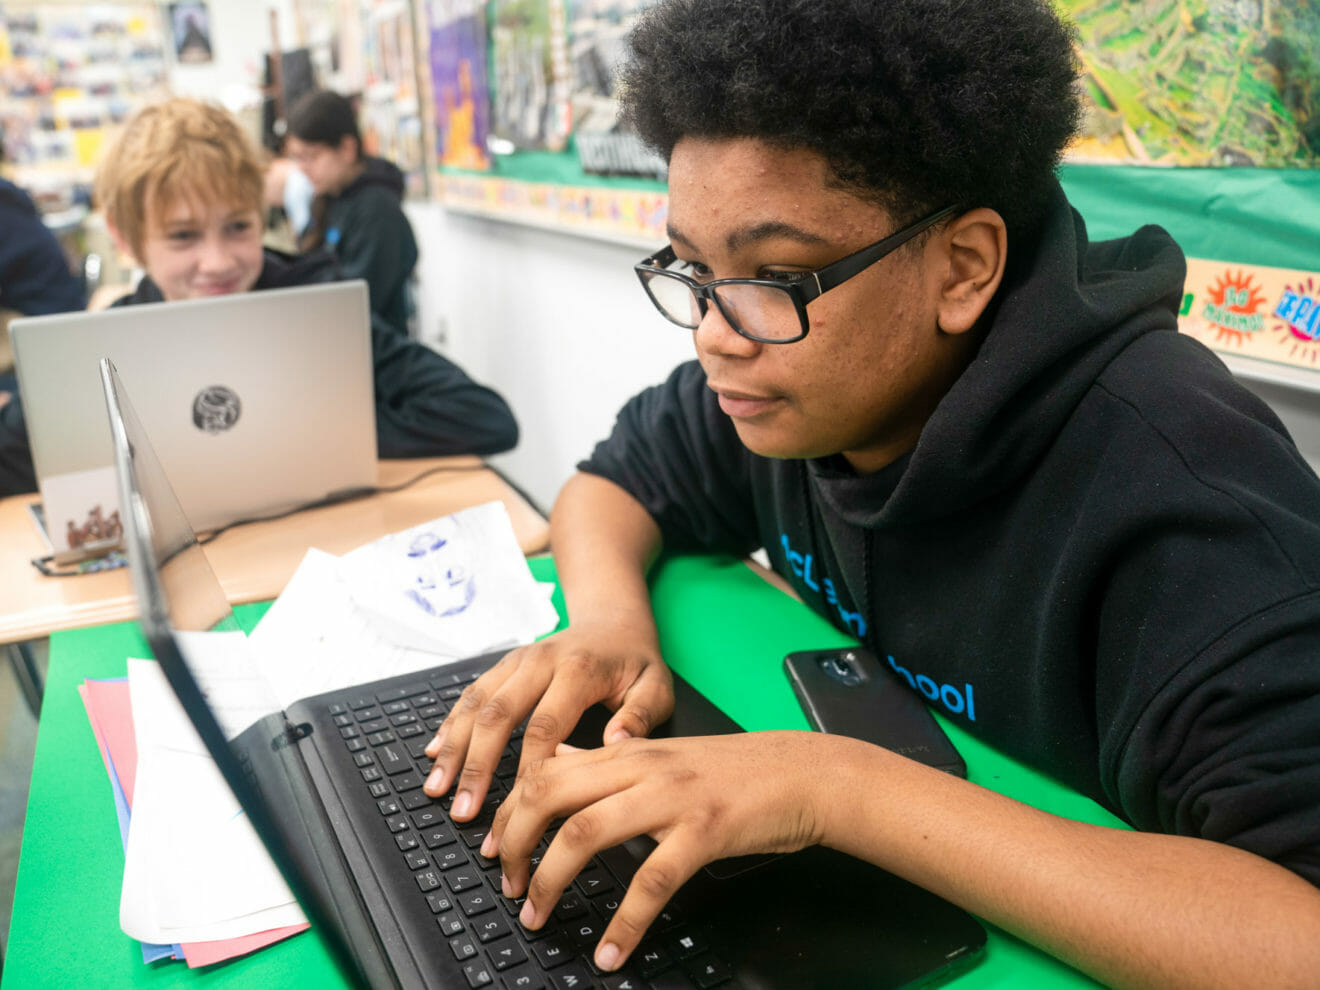 Boy in glasses uses laptop in class